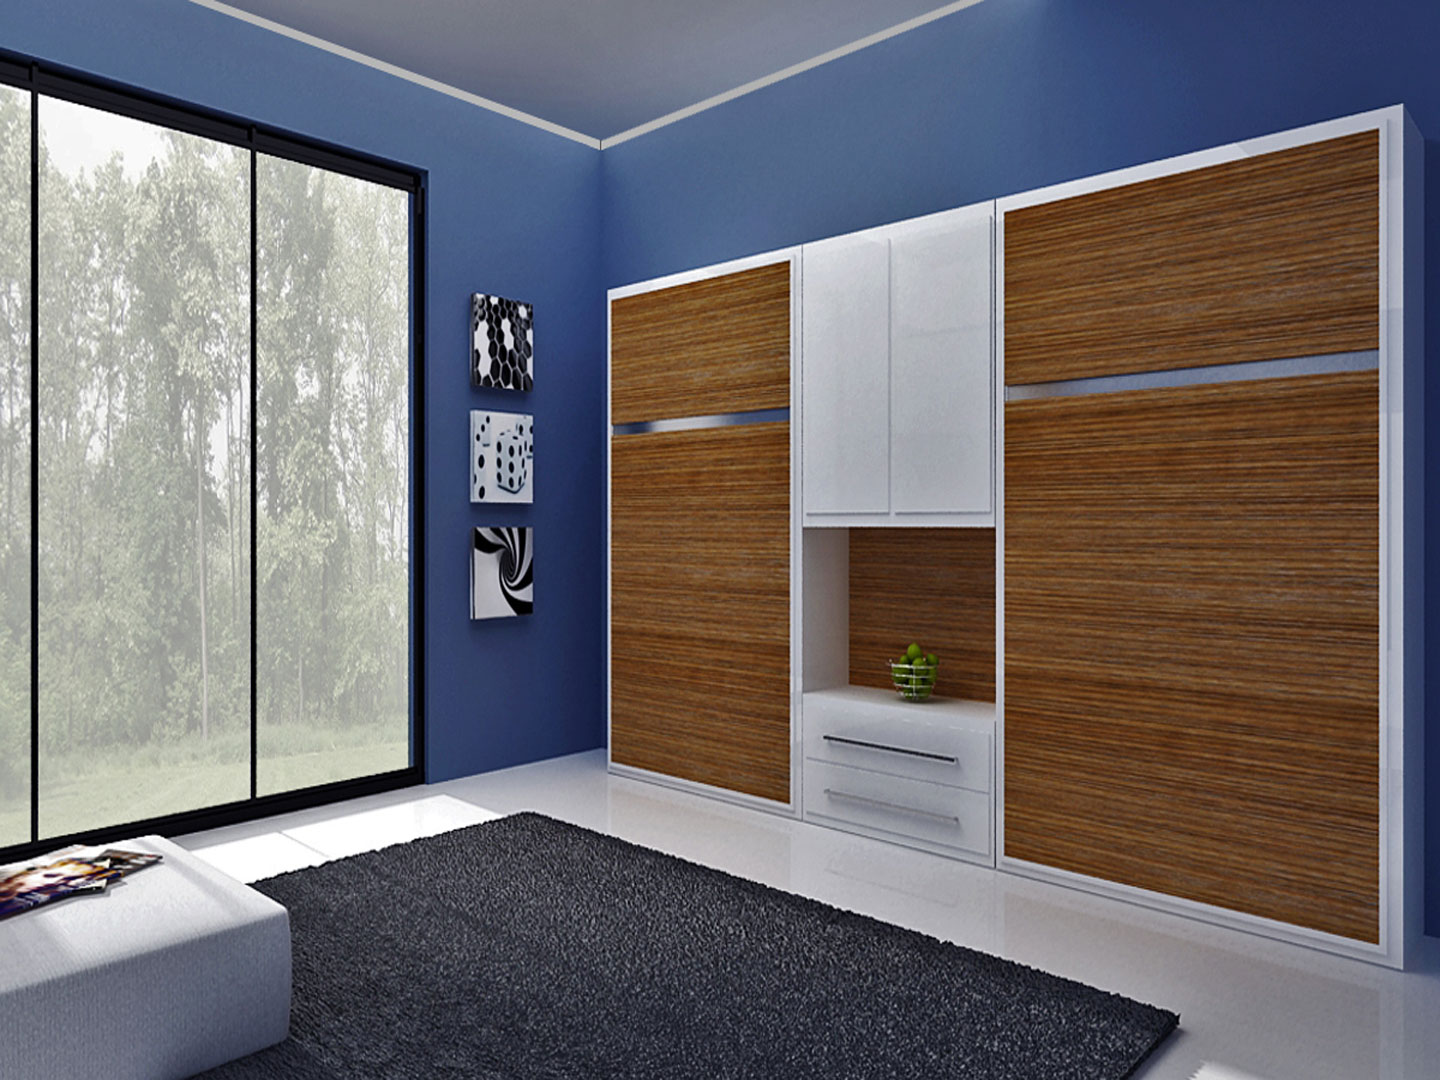 Wall Bed 30